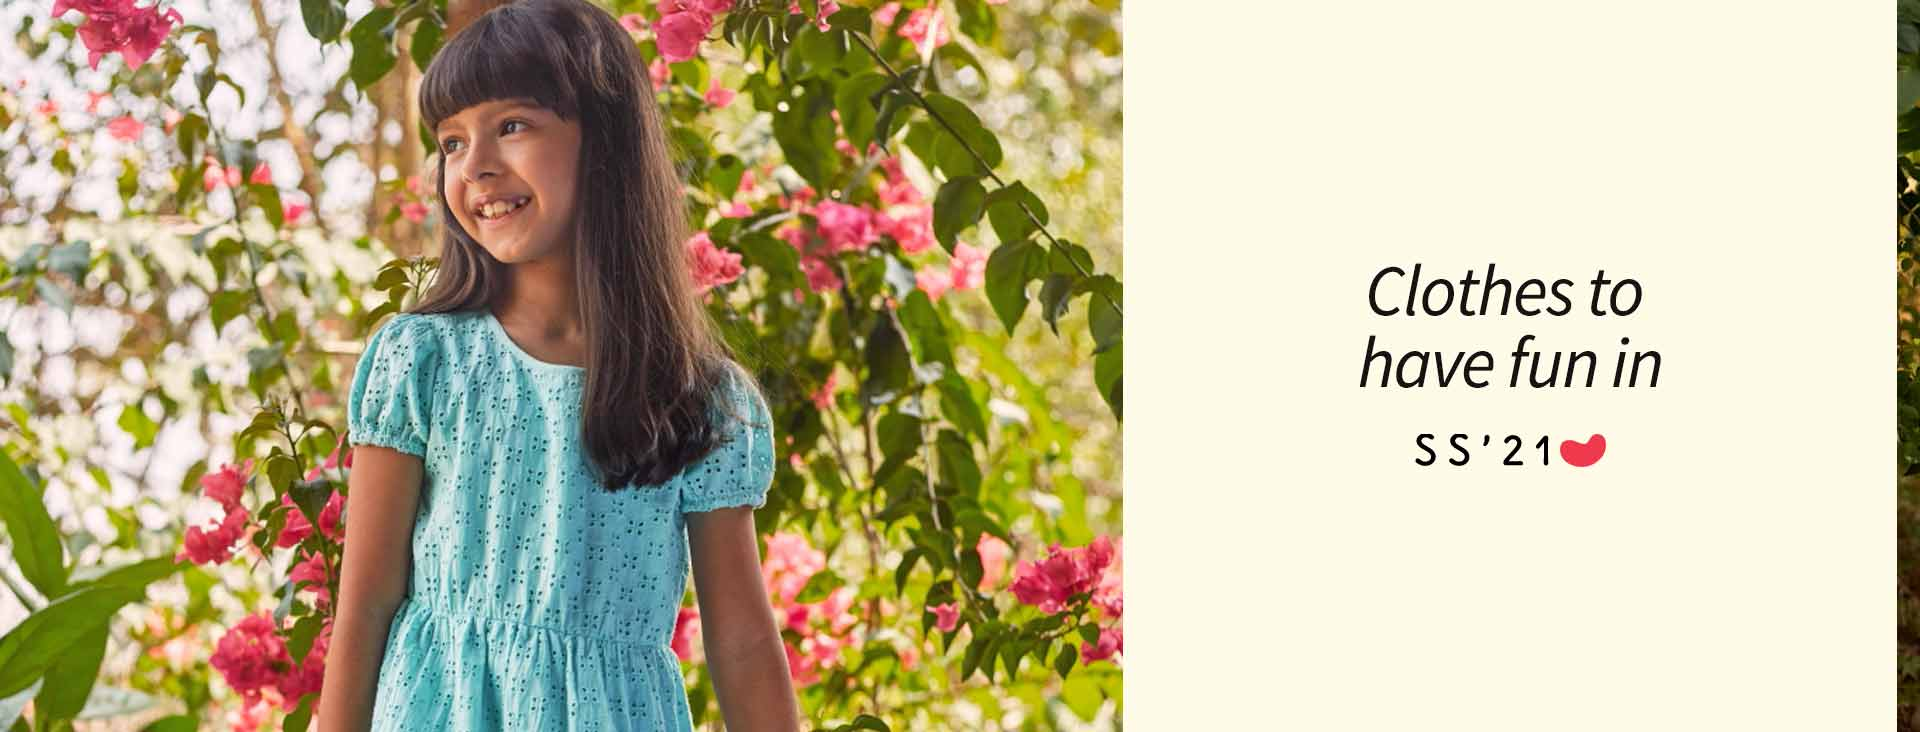 With colourful prints,  pleats and ruffles, our dresses are perfect for playdates